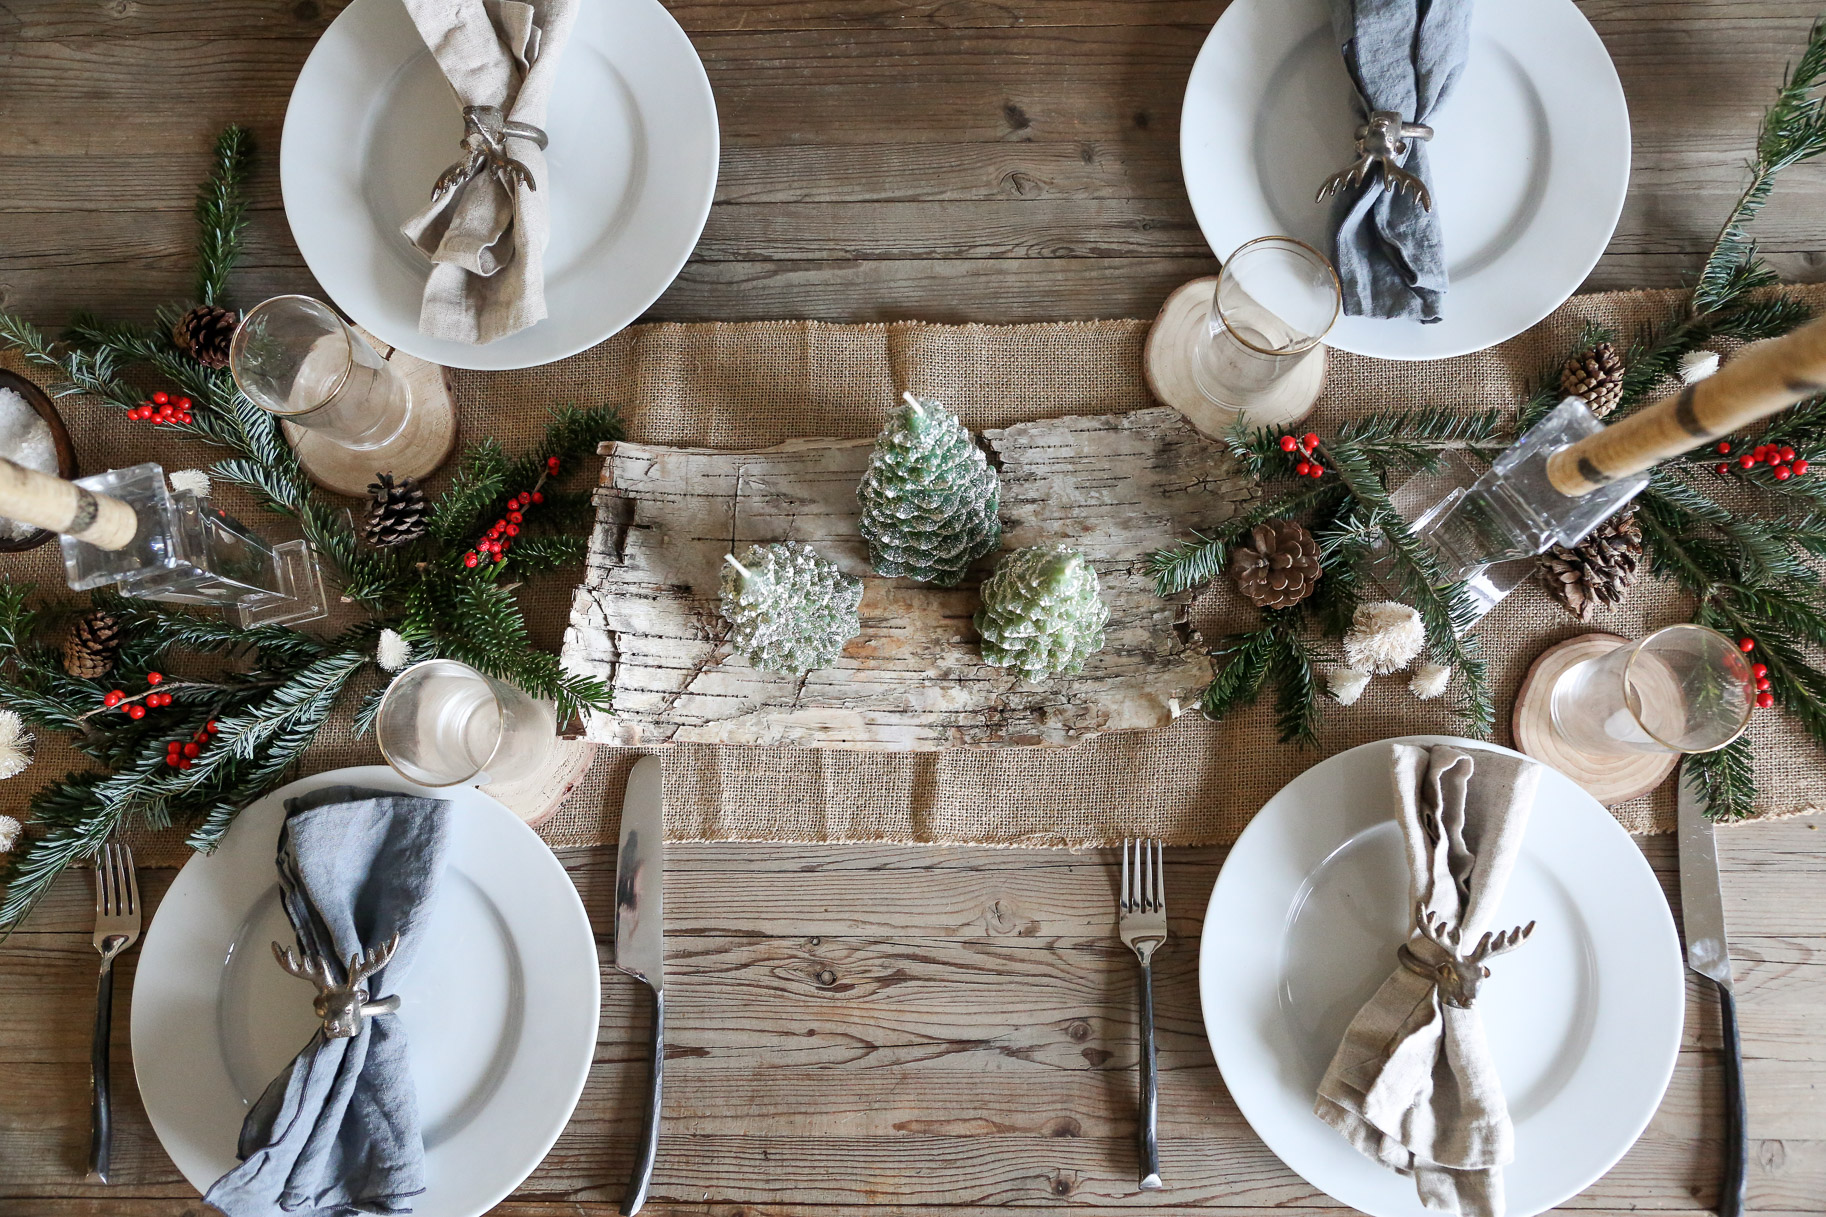 How-to-create-a-rustic-cozy-winter-woods-tablescape-for-the-holidays3.jpg